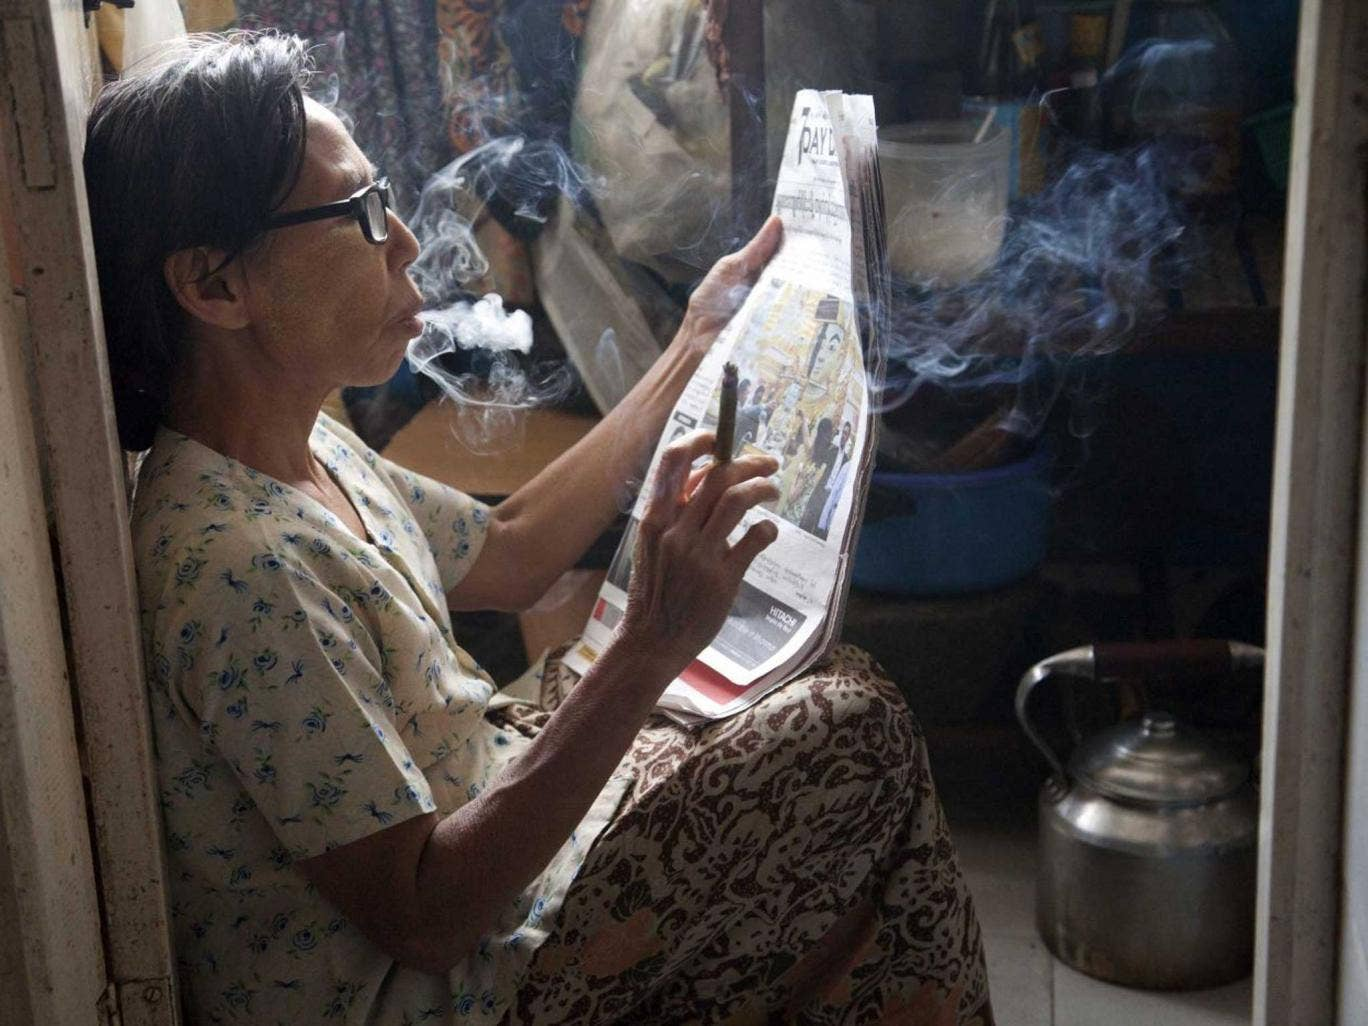 A woman in Burma reads the paper while smoking